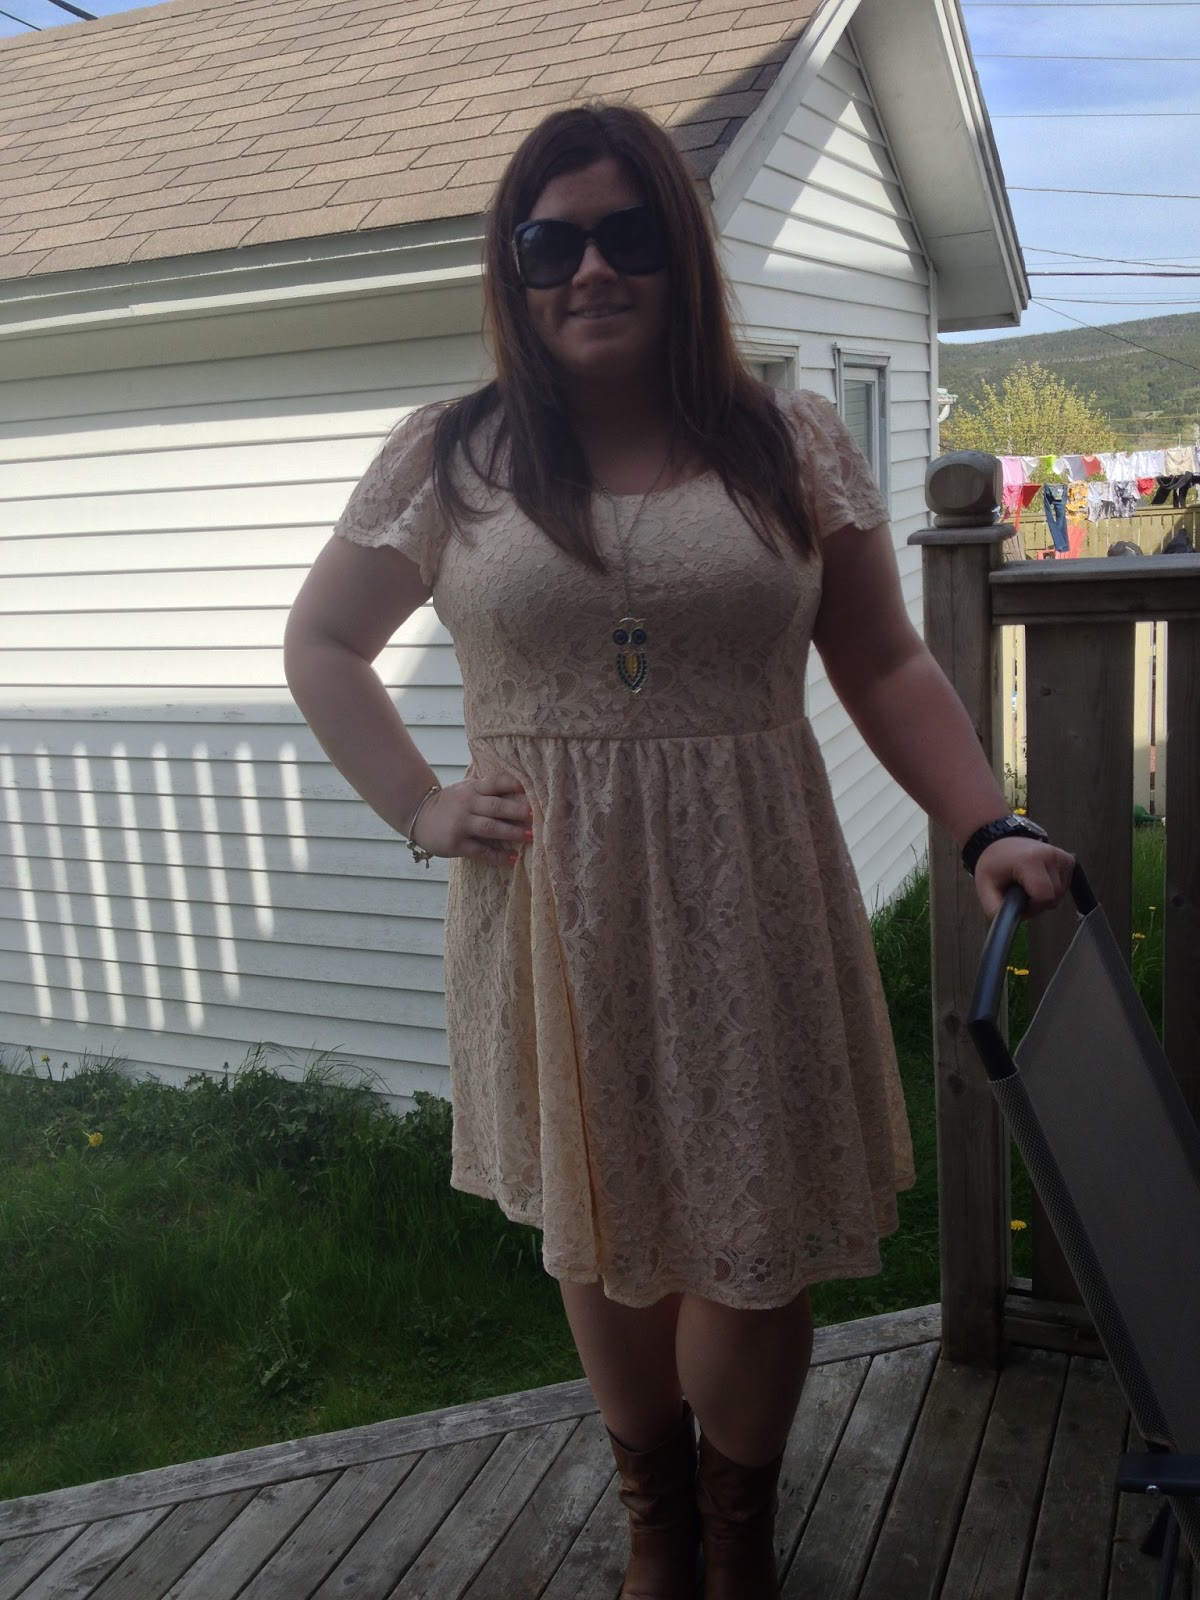 How To Make Every Grade More Like >> April Pink Beauty: Curvy Girl Fashion - Forever 21+ Peach ...